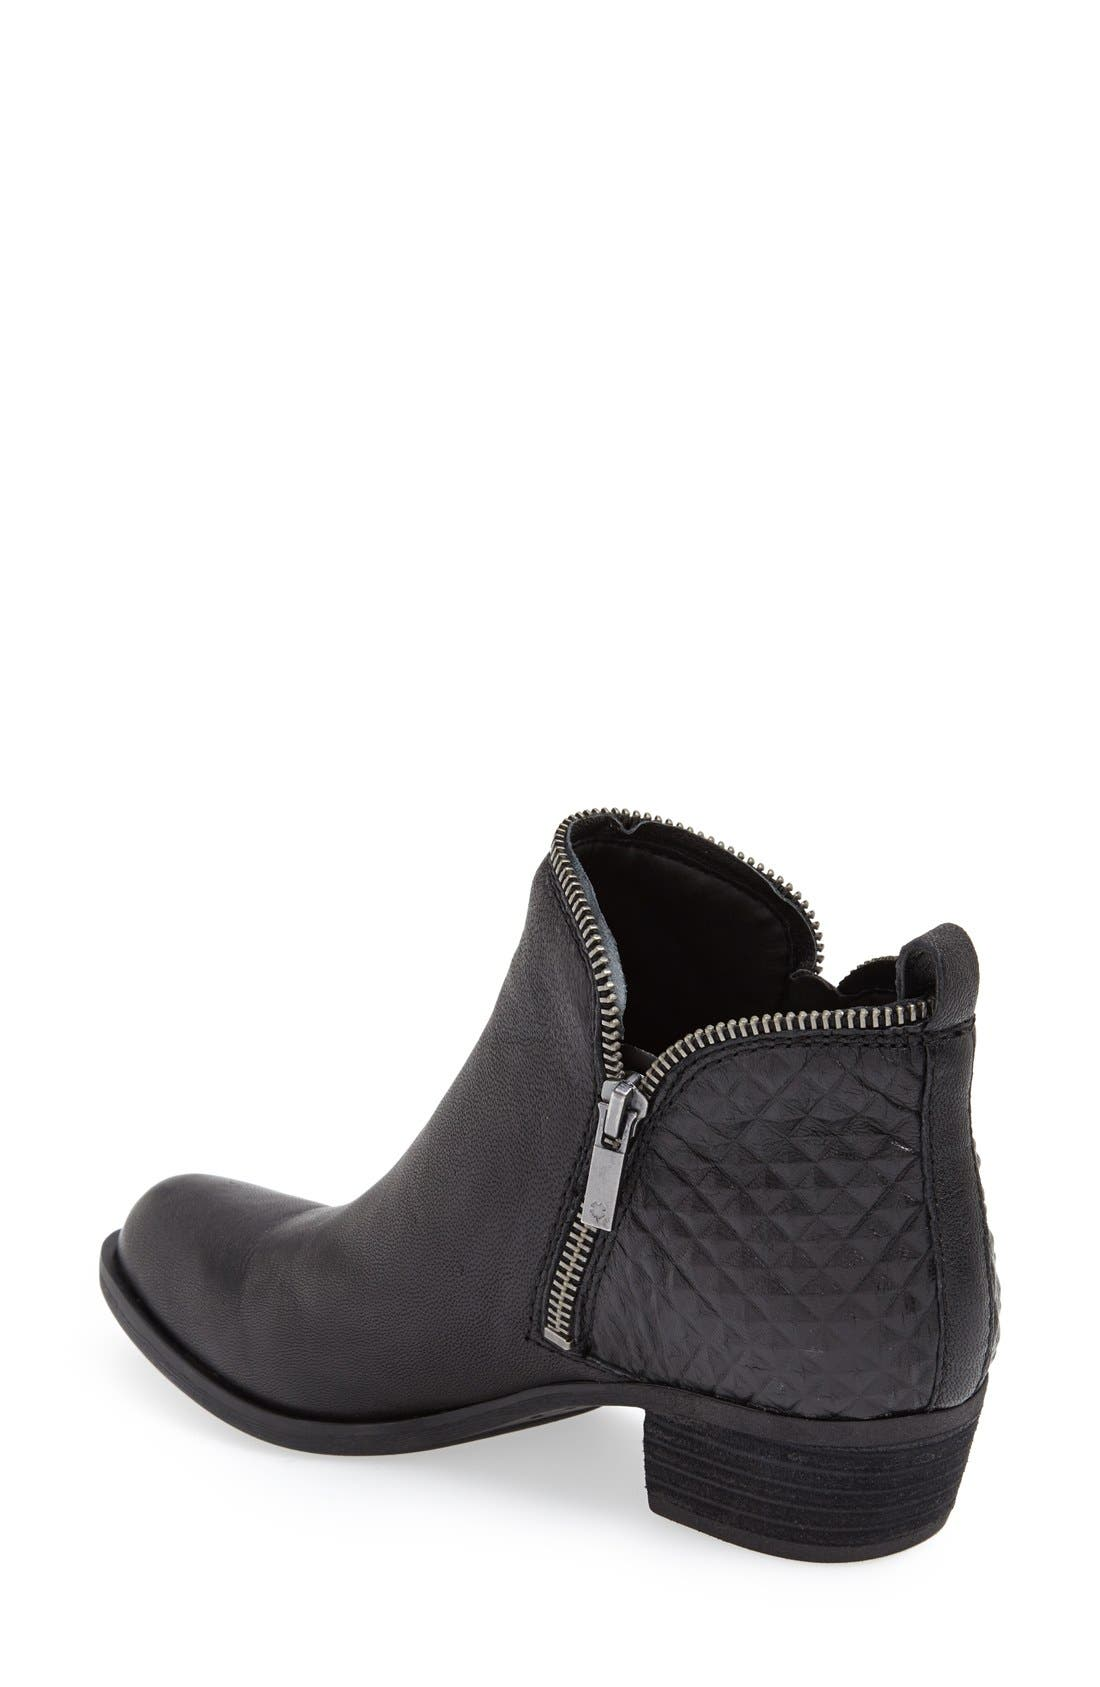 LUCKY BRAND,                             'Bartalino' Bootie,                             Alternate thumbnail 2, color,                             001